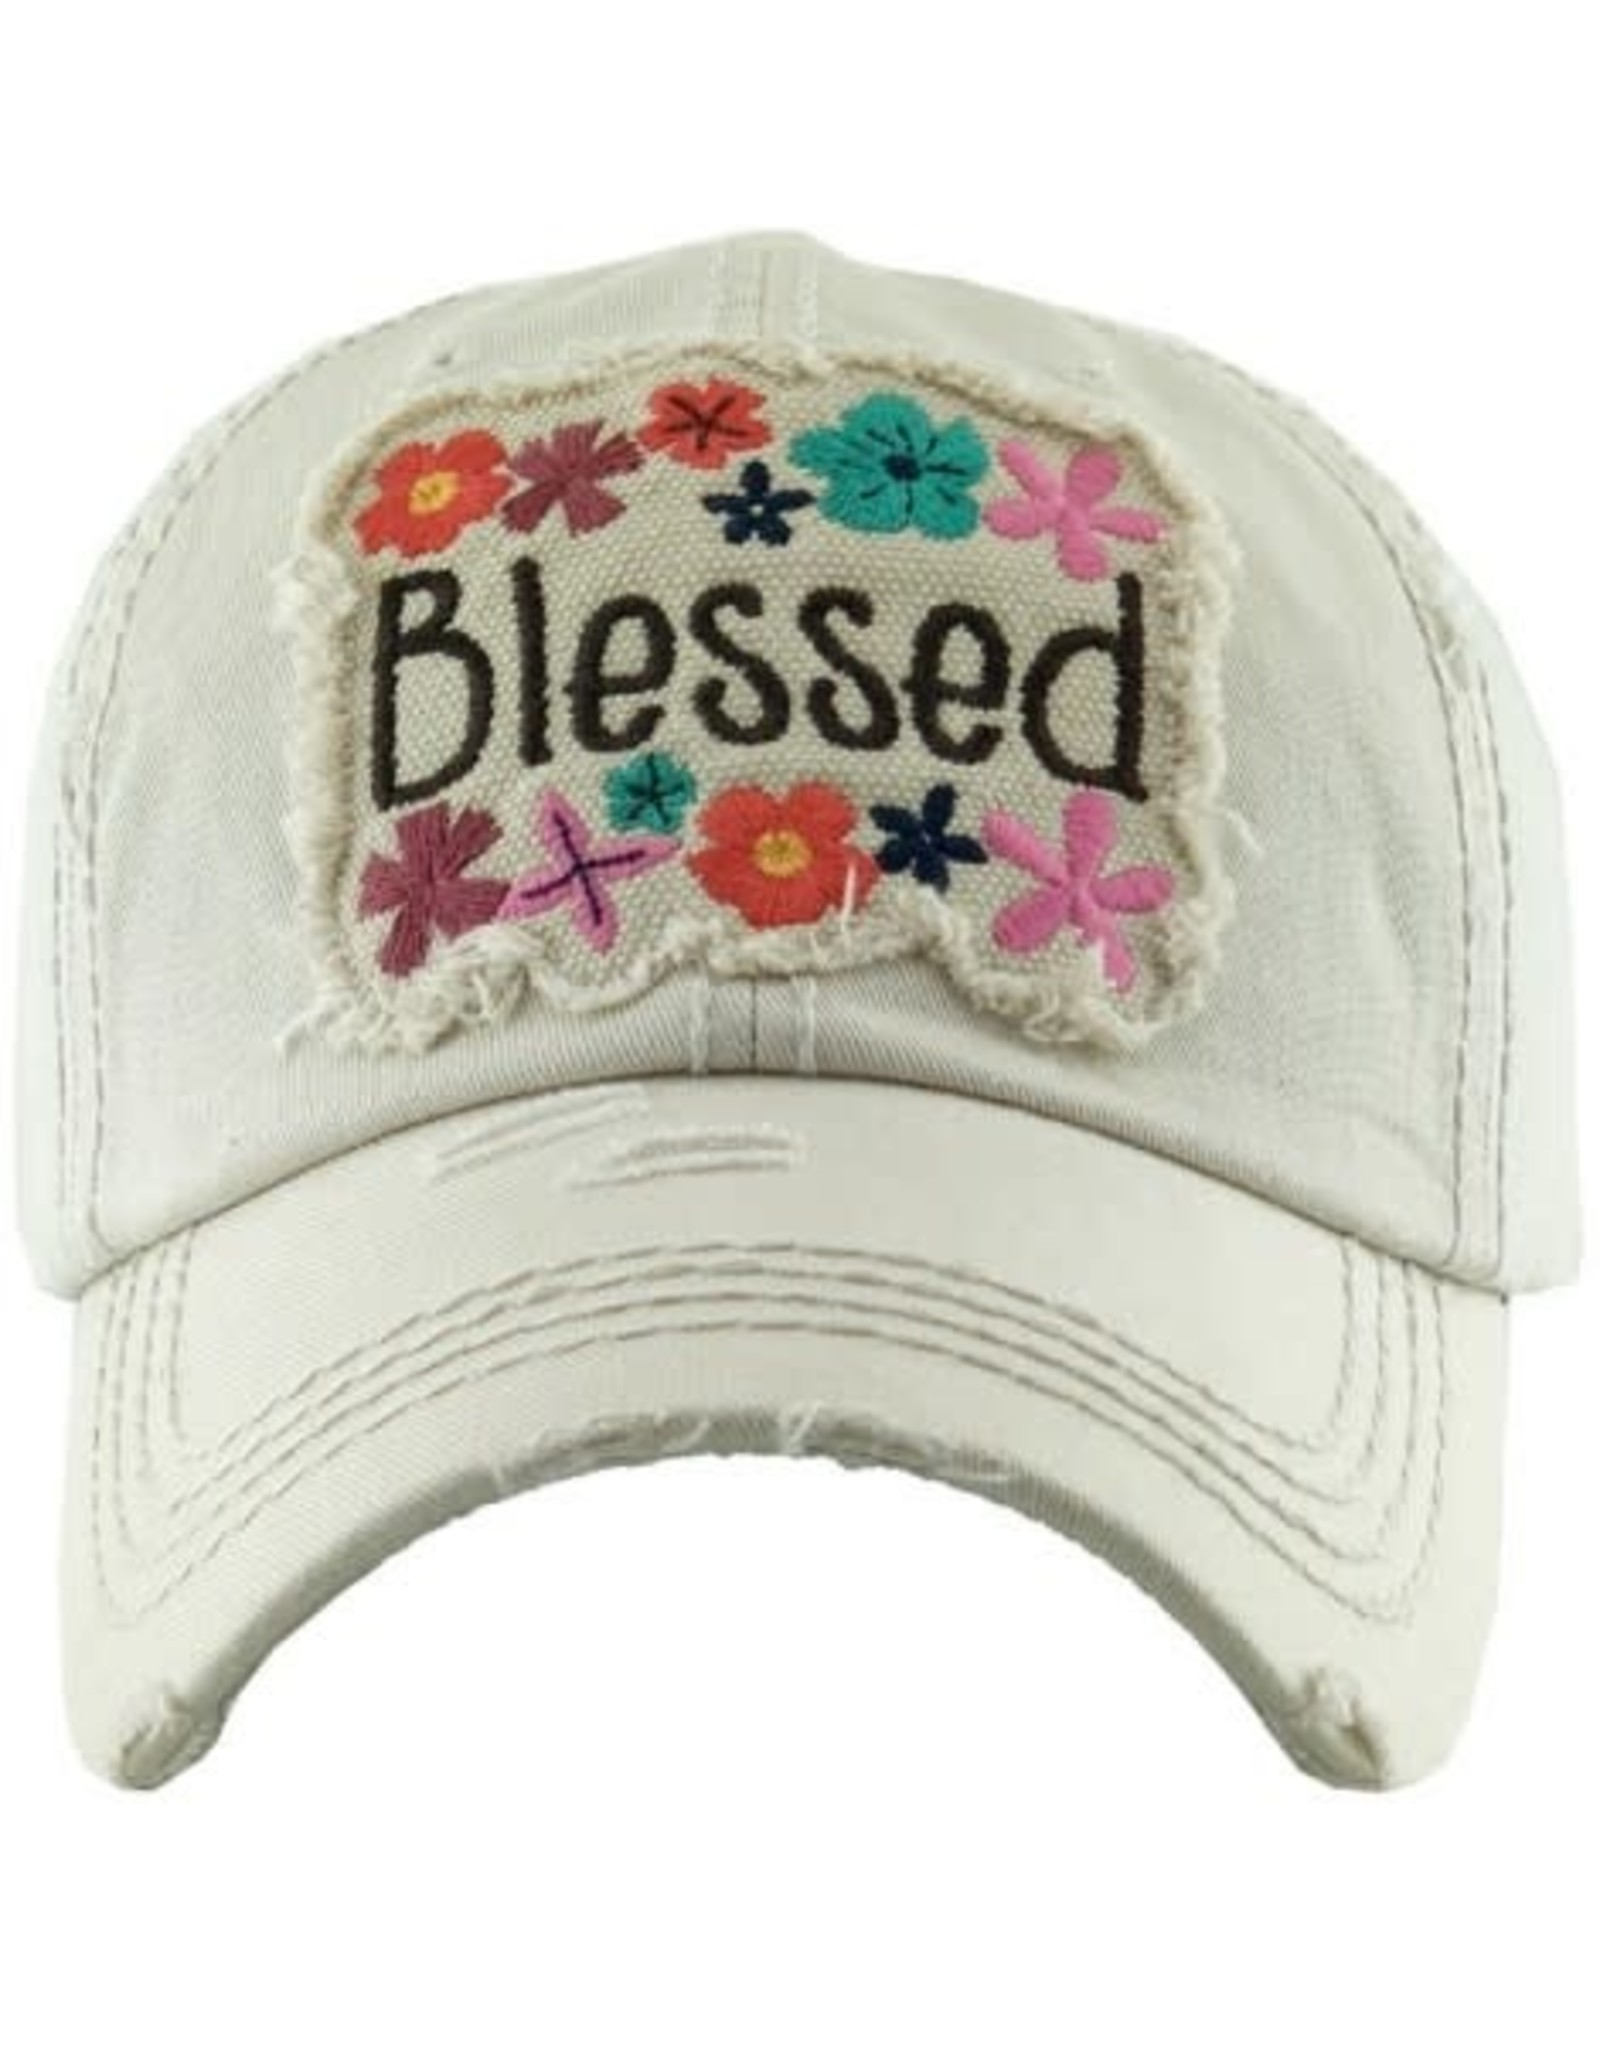 Blessed Cream Floral hat